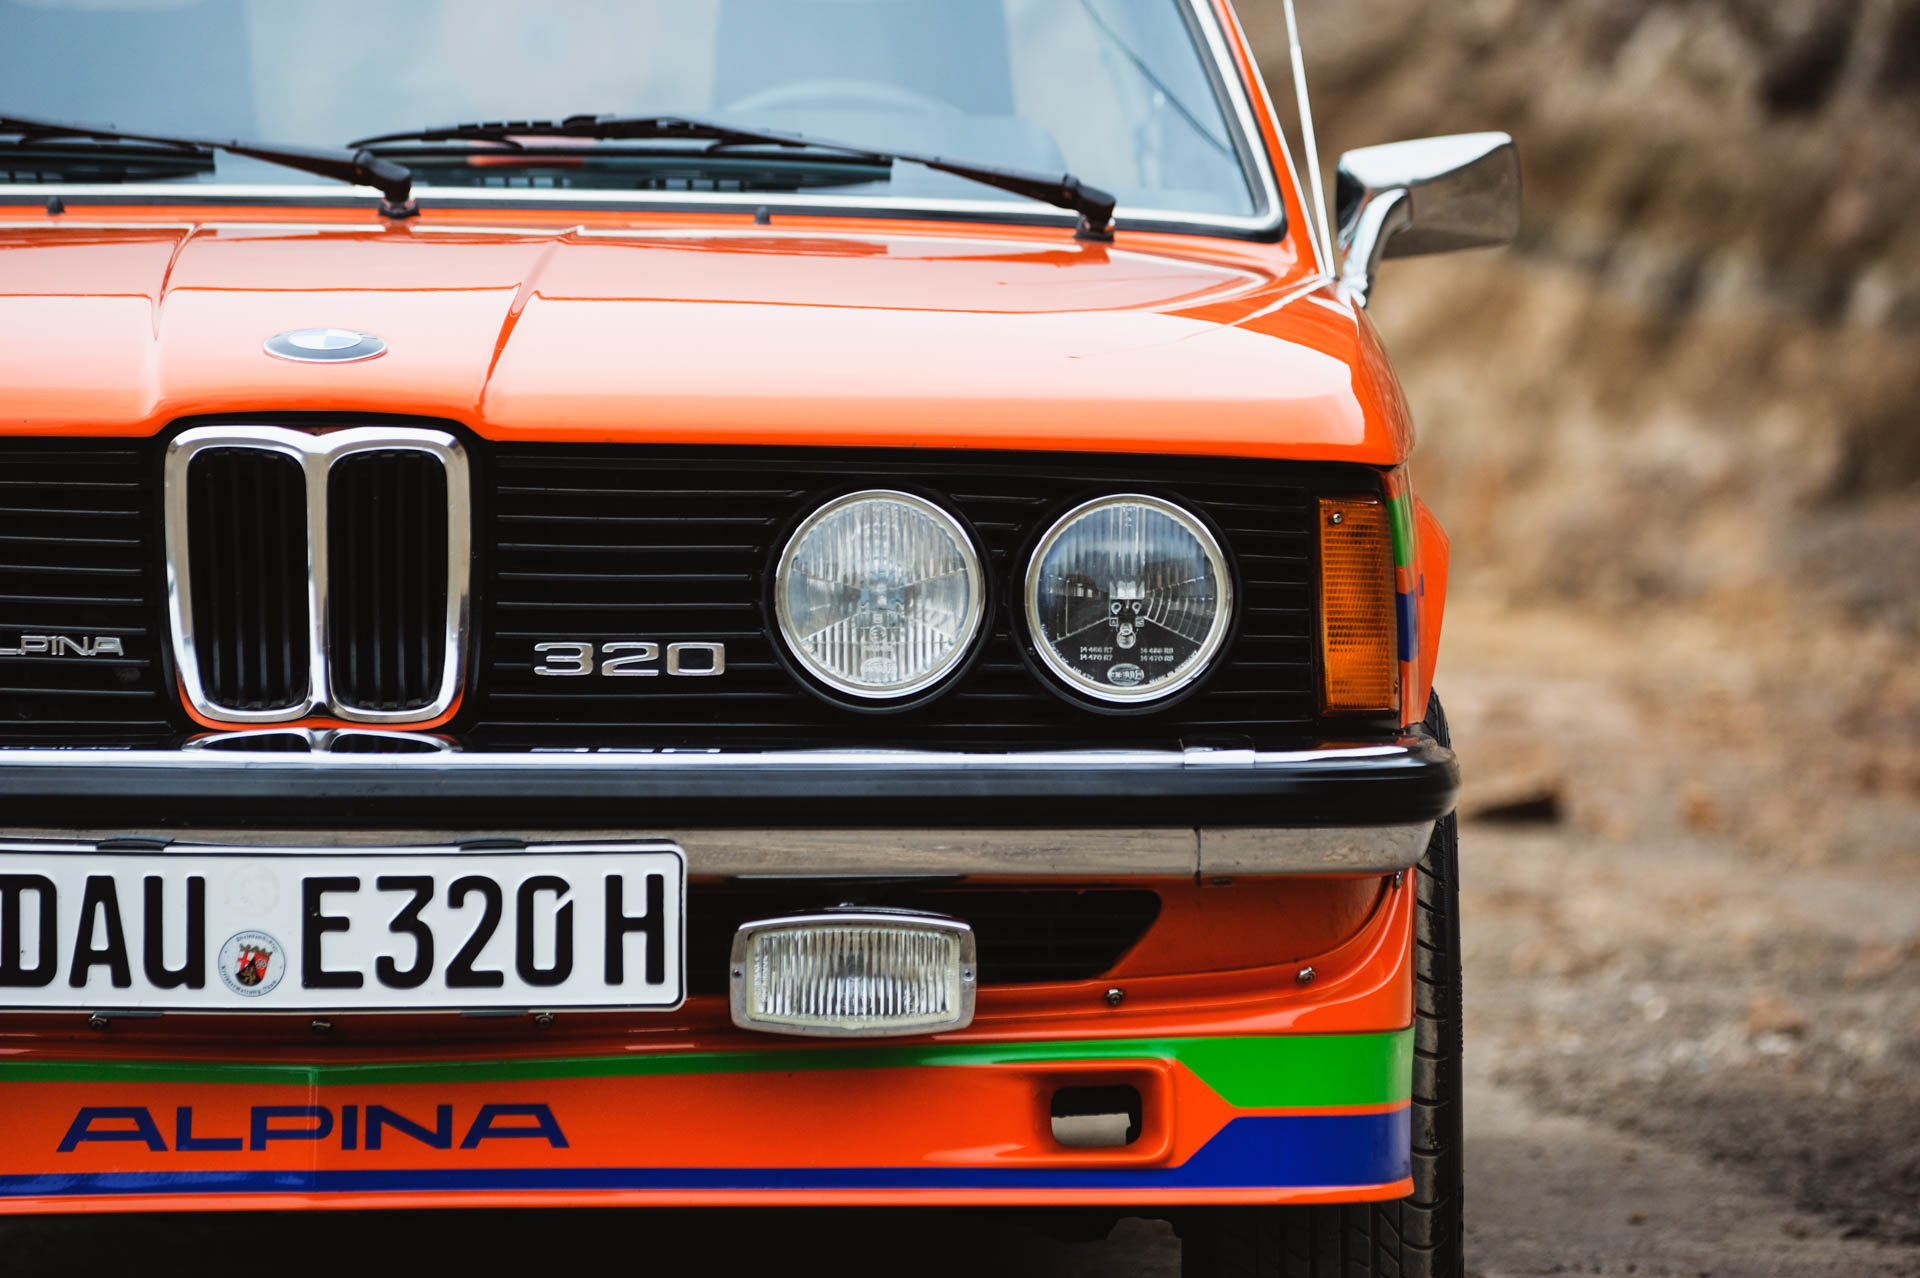 e21-bmw-3er-alpina-youngtimer-9